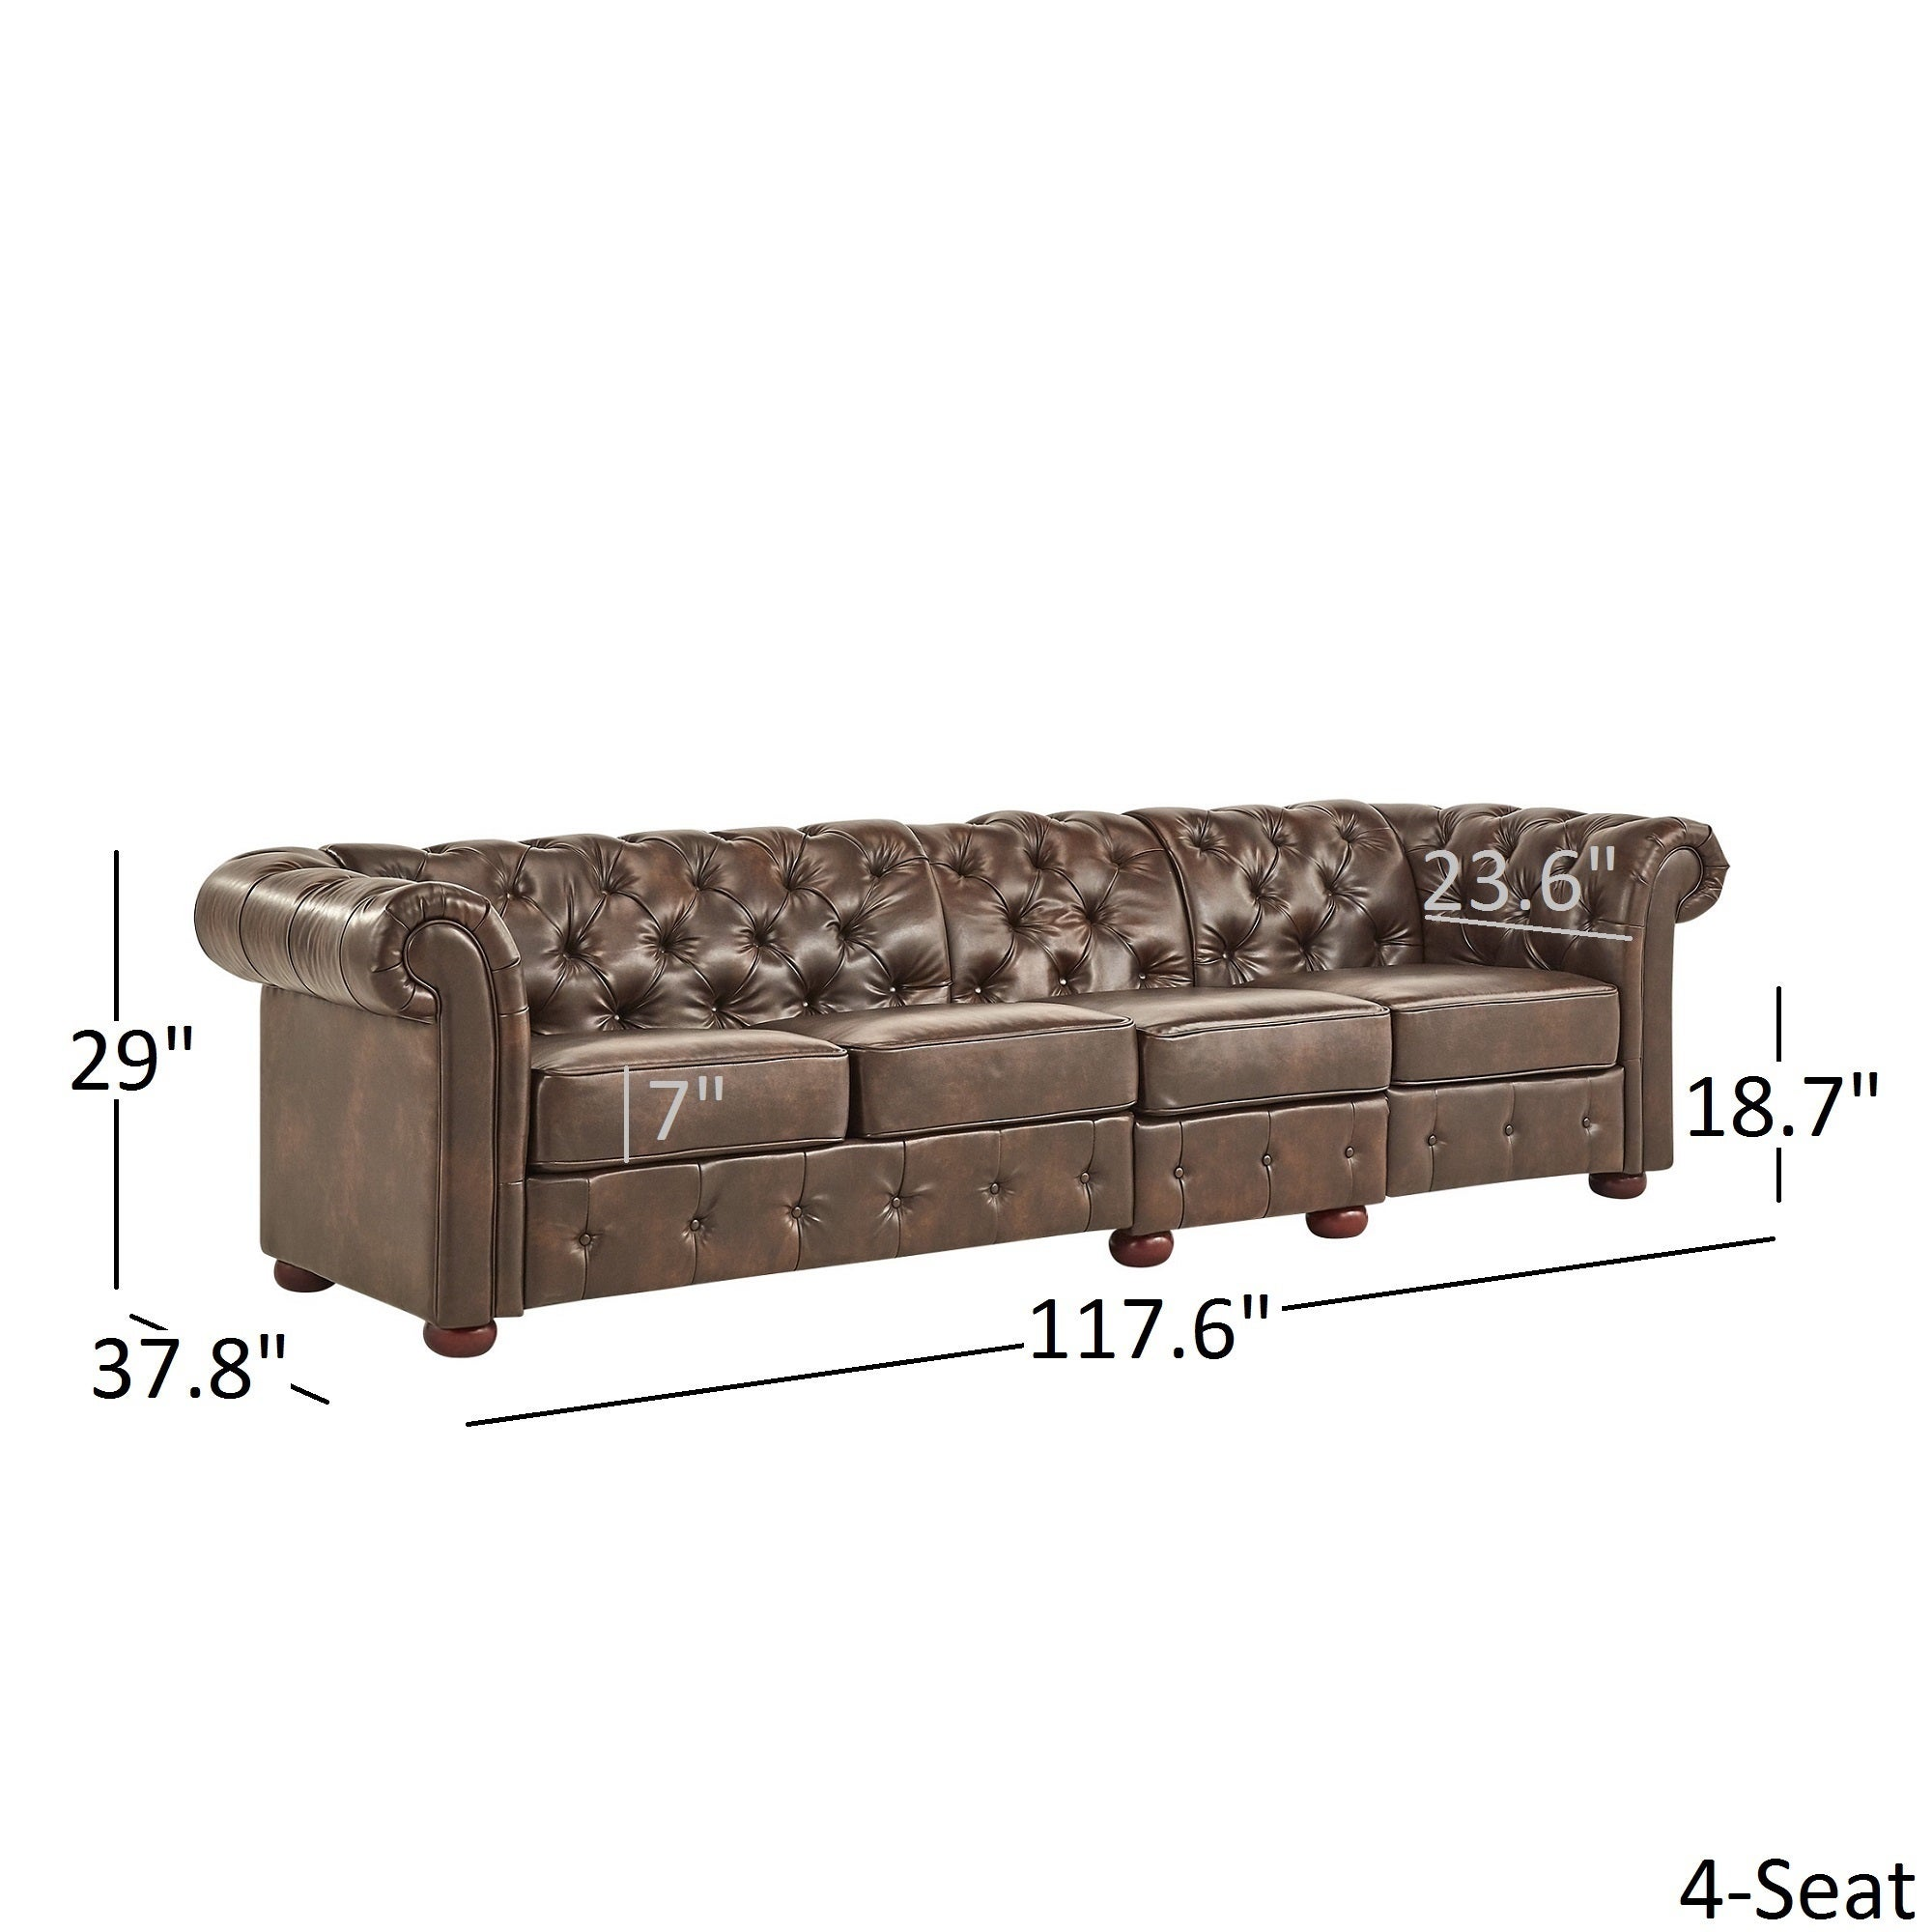 Knightsbridge Bonded Leather Oversize Extra Long Tufted Chesterfield Sofa By